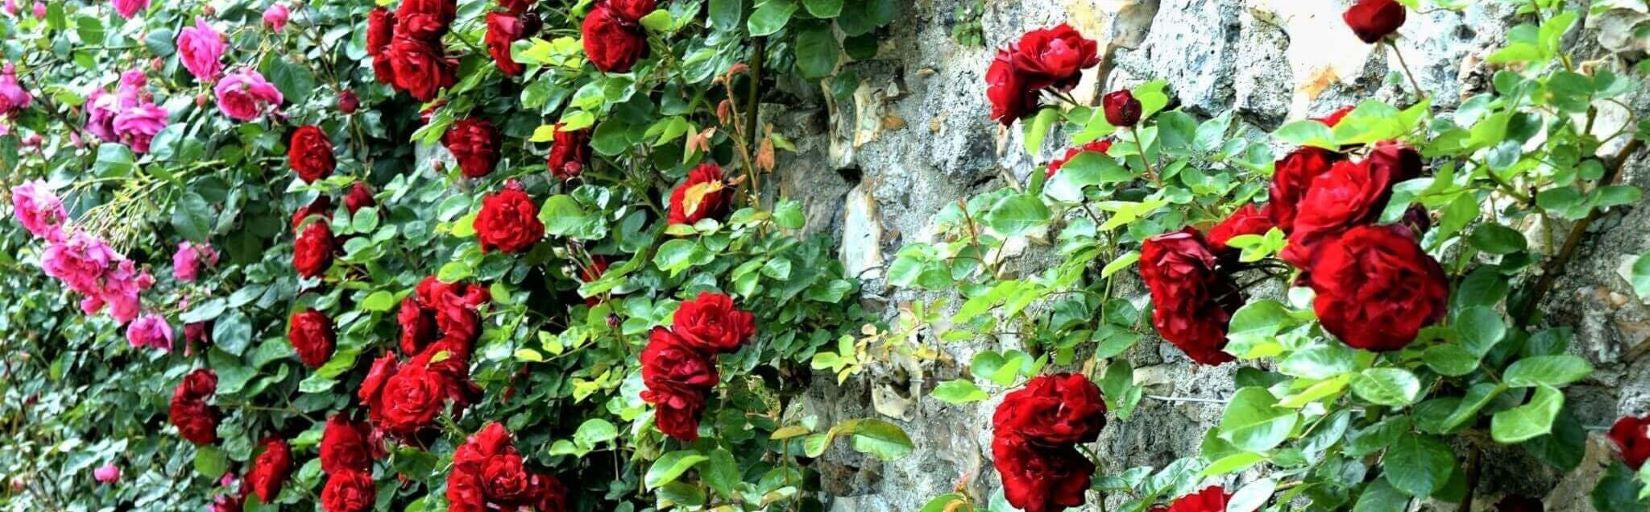 Rose bushes for Poland. We deliver bare root and potted garden roses all over Poland.